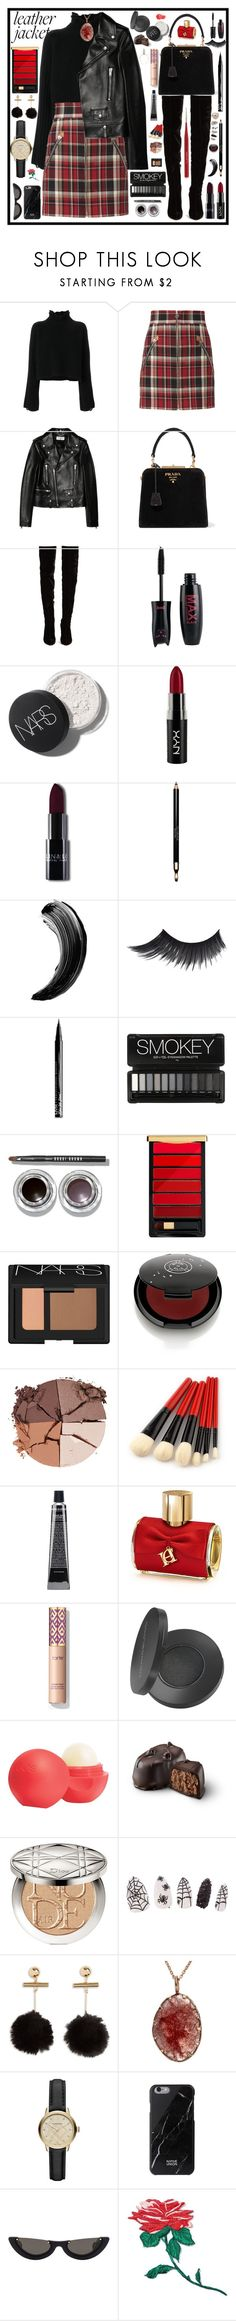 """""""127"""" by dukuwww ❤ liked on Polyvore featuring Golden Goose, rag & bone, Yves Saint Laurent, Prada, Christian Louboutin, NYX, Clarins, Bobbi Brown Cosmetics, L'Oréal Paris and NARS Cosmetics"""